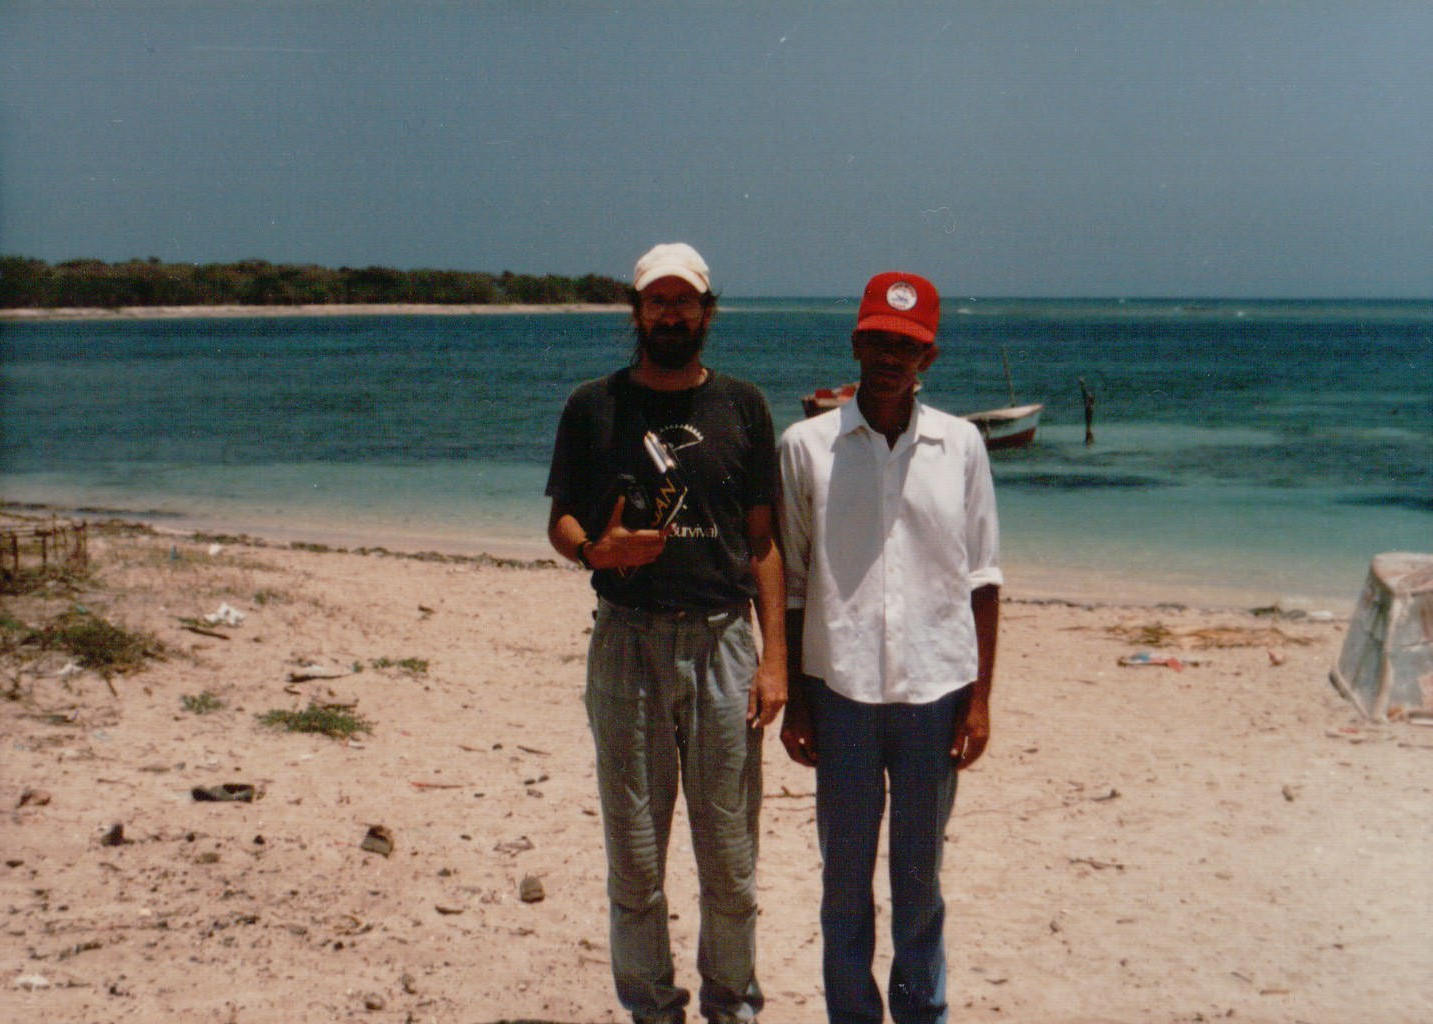 Interviewing fisherman in northern coastal community of Buen Hombre, Dominican Republic  (Photography by Richard W. Stoffle)